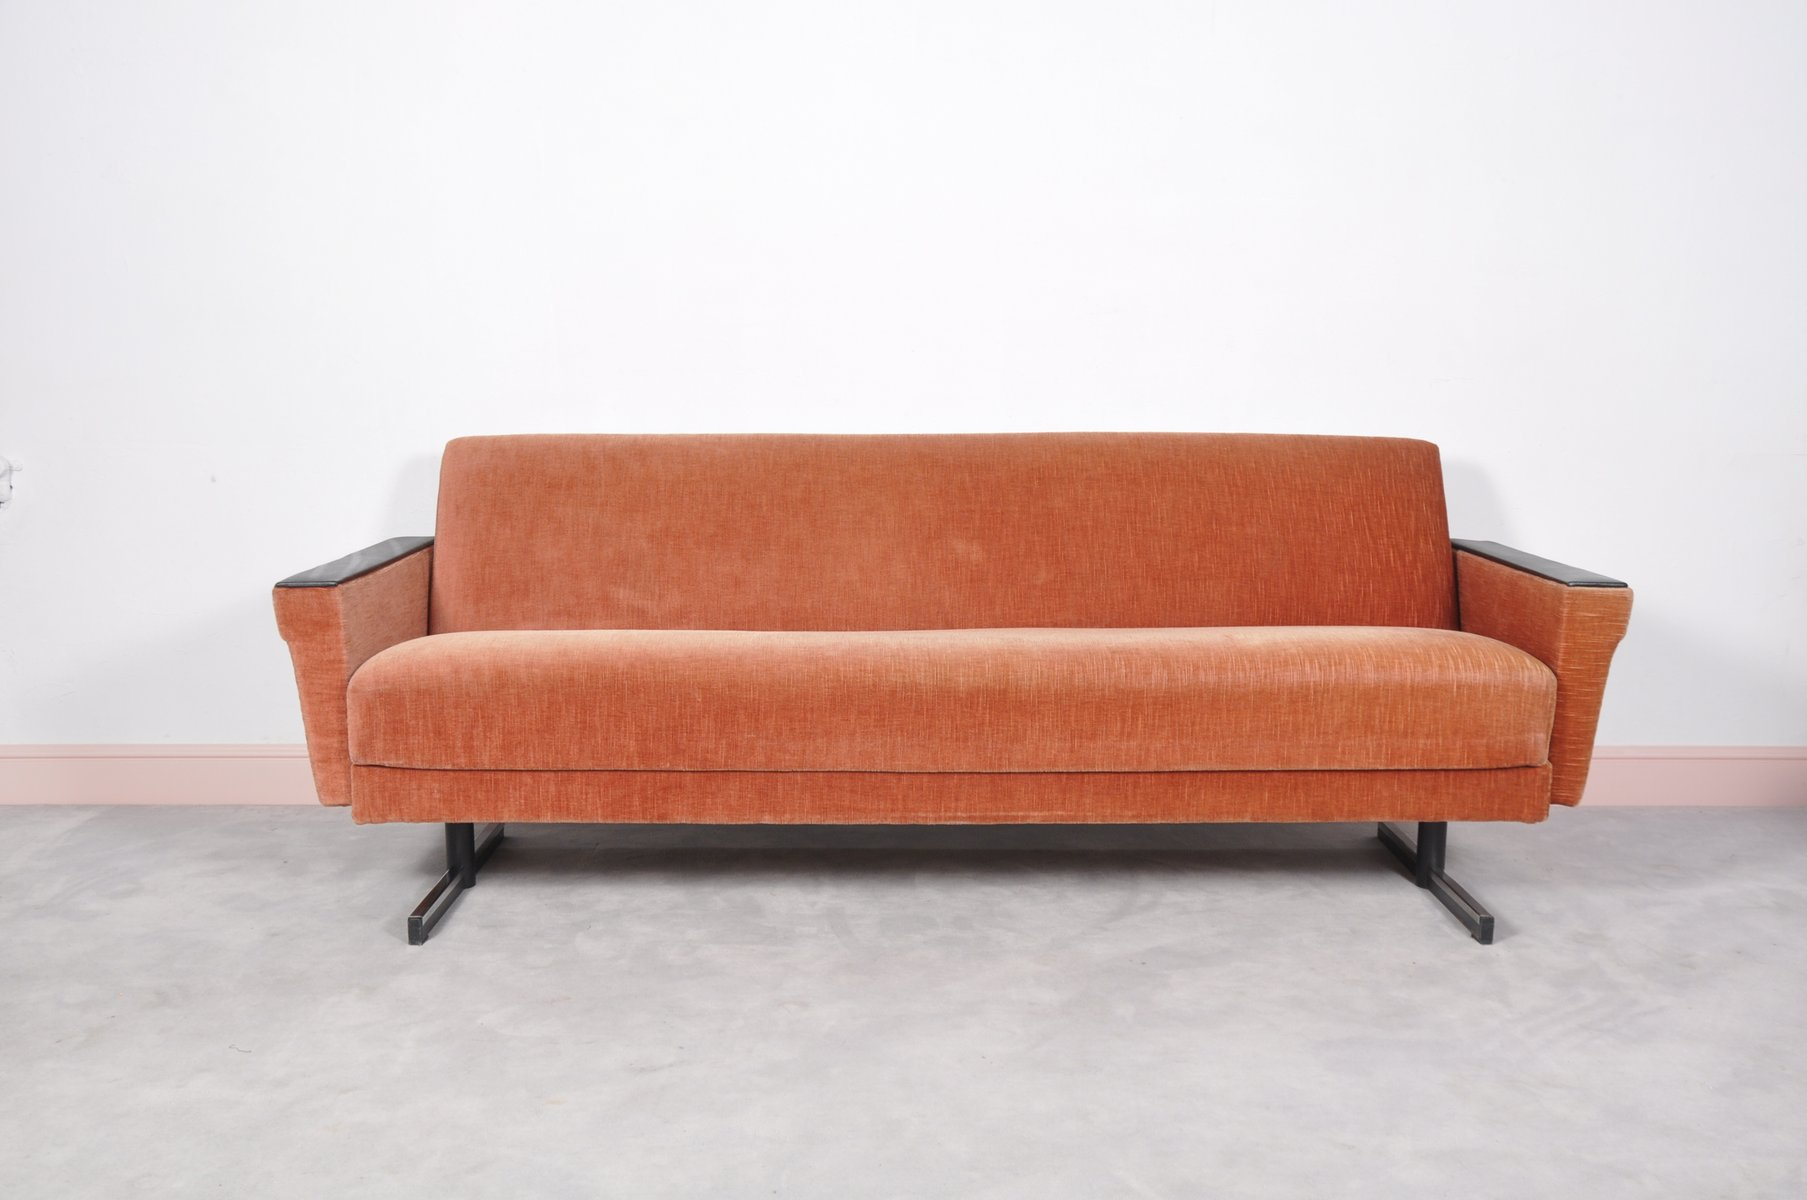 Mid century modern daybed sofa with shaker legs for sale for Mid century modern day bed